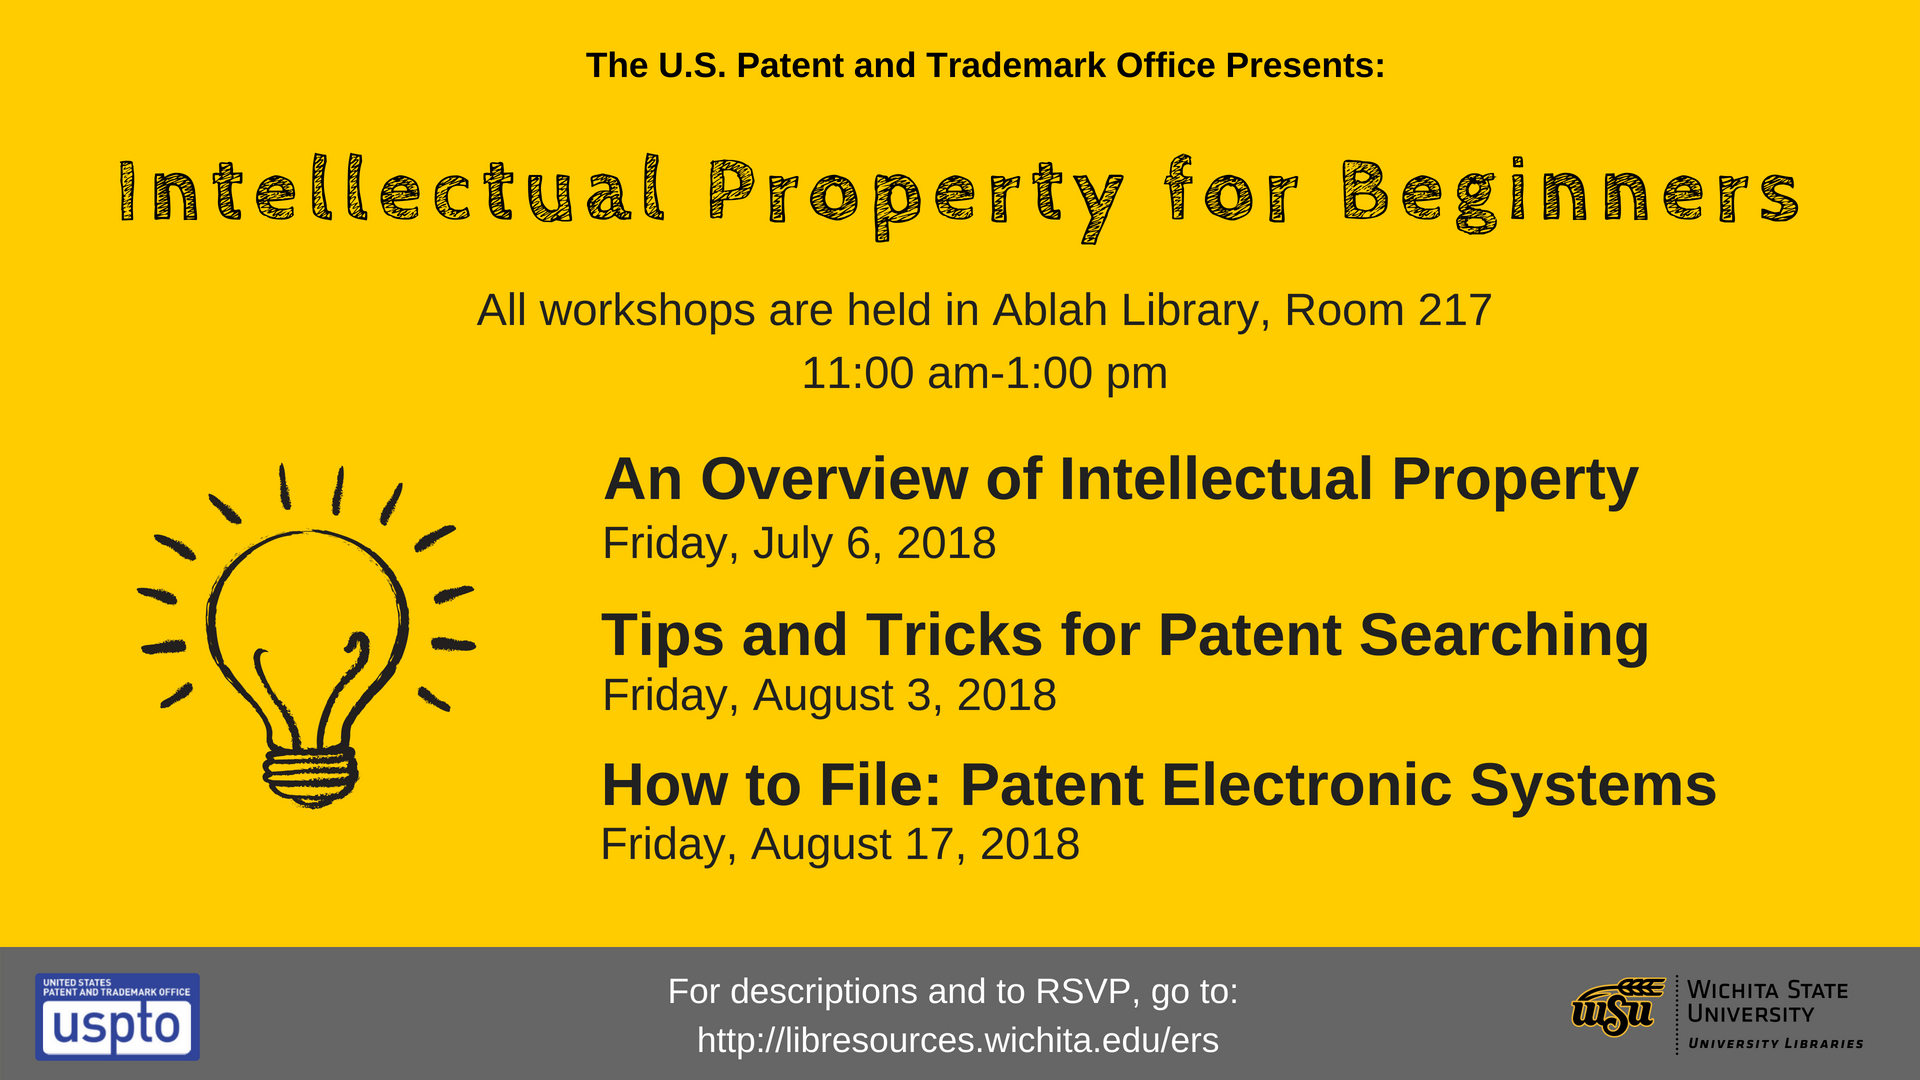 Tips and Tricks for Patent Searching